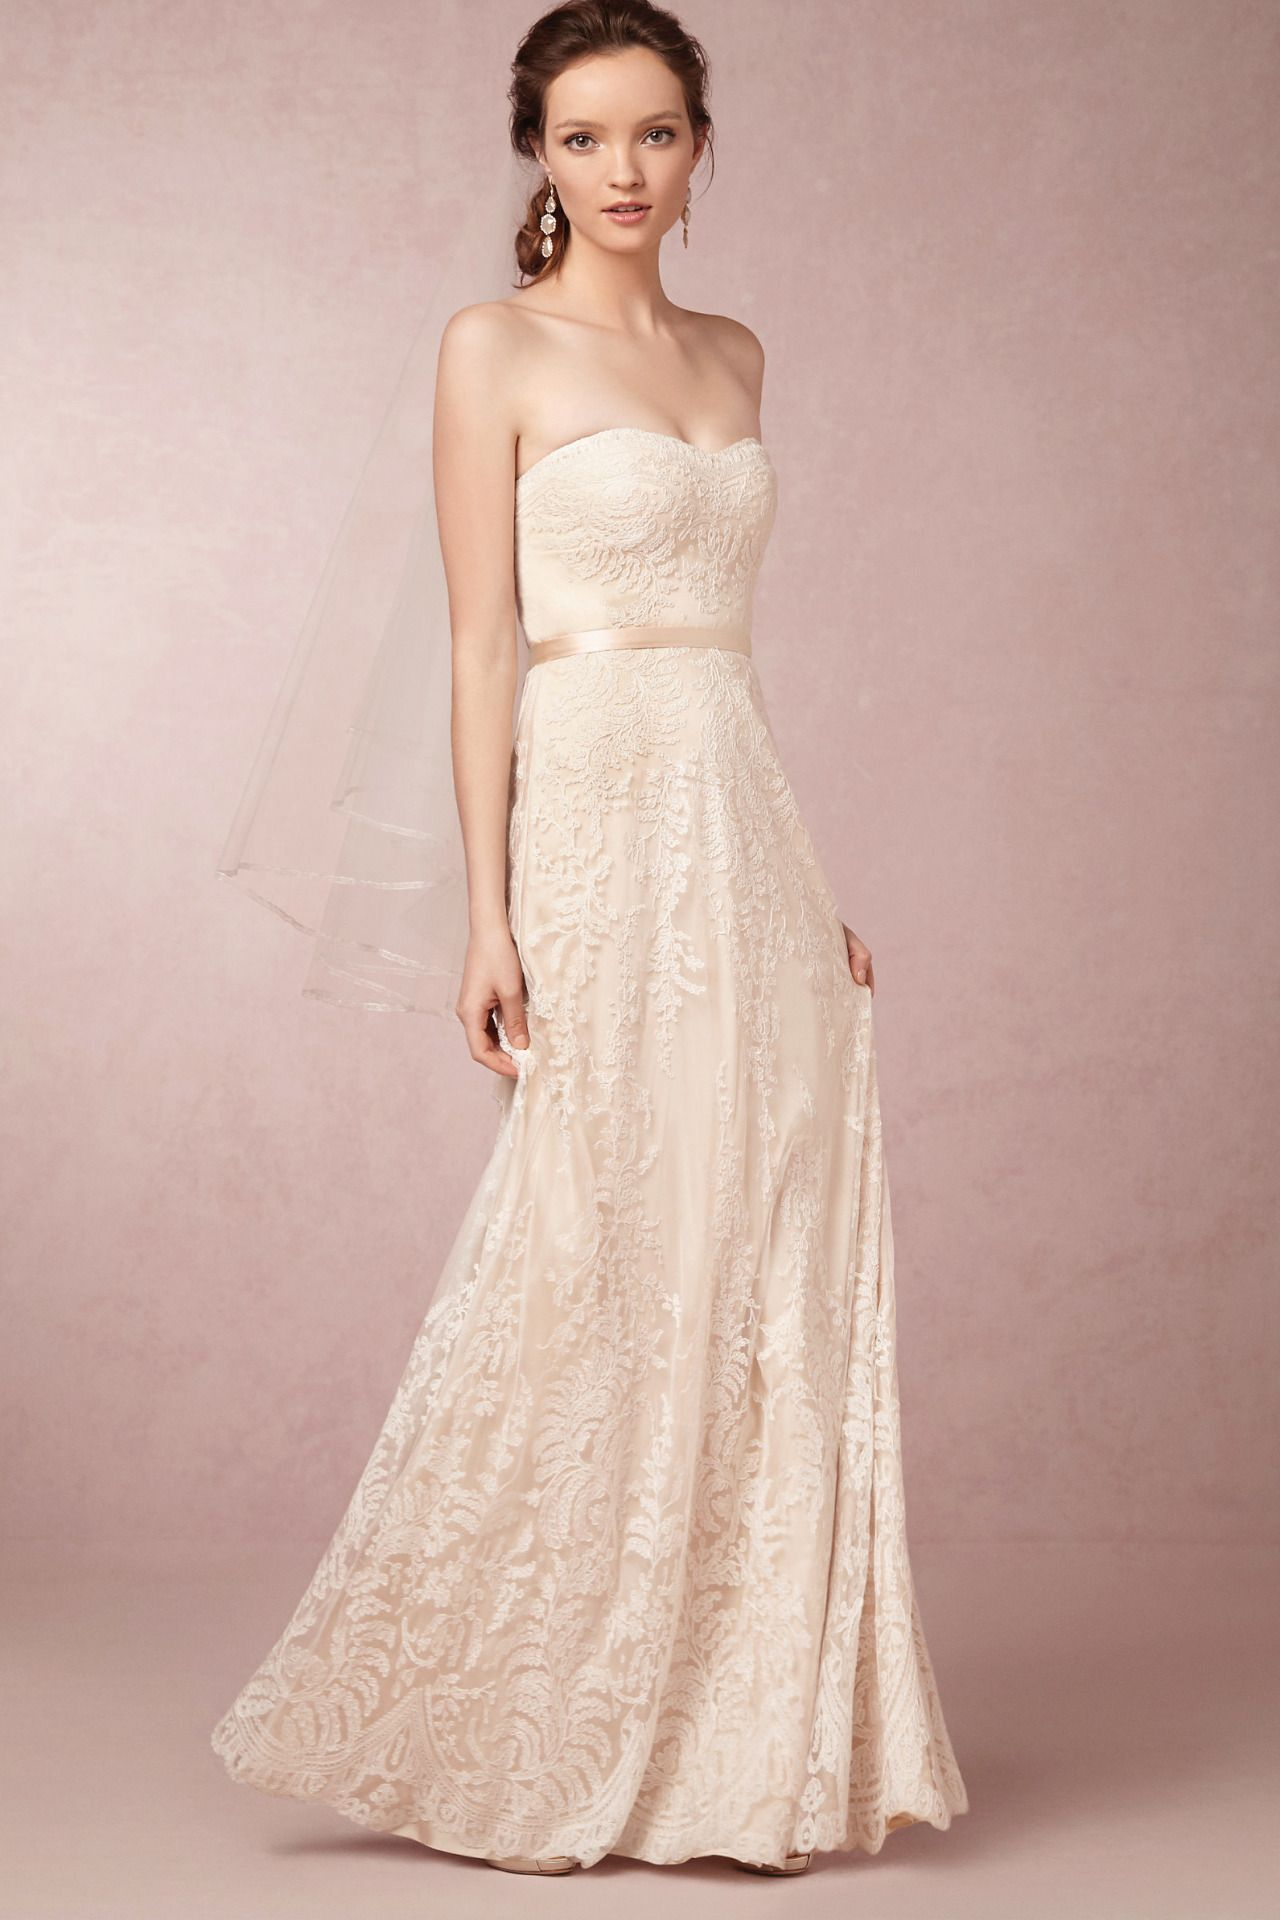 wedding gowns that are simple and elegant bhldn gowns and navy